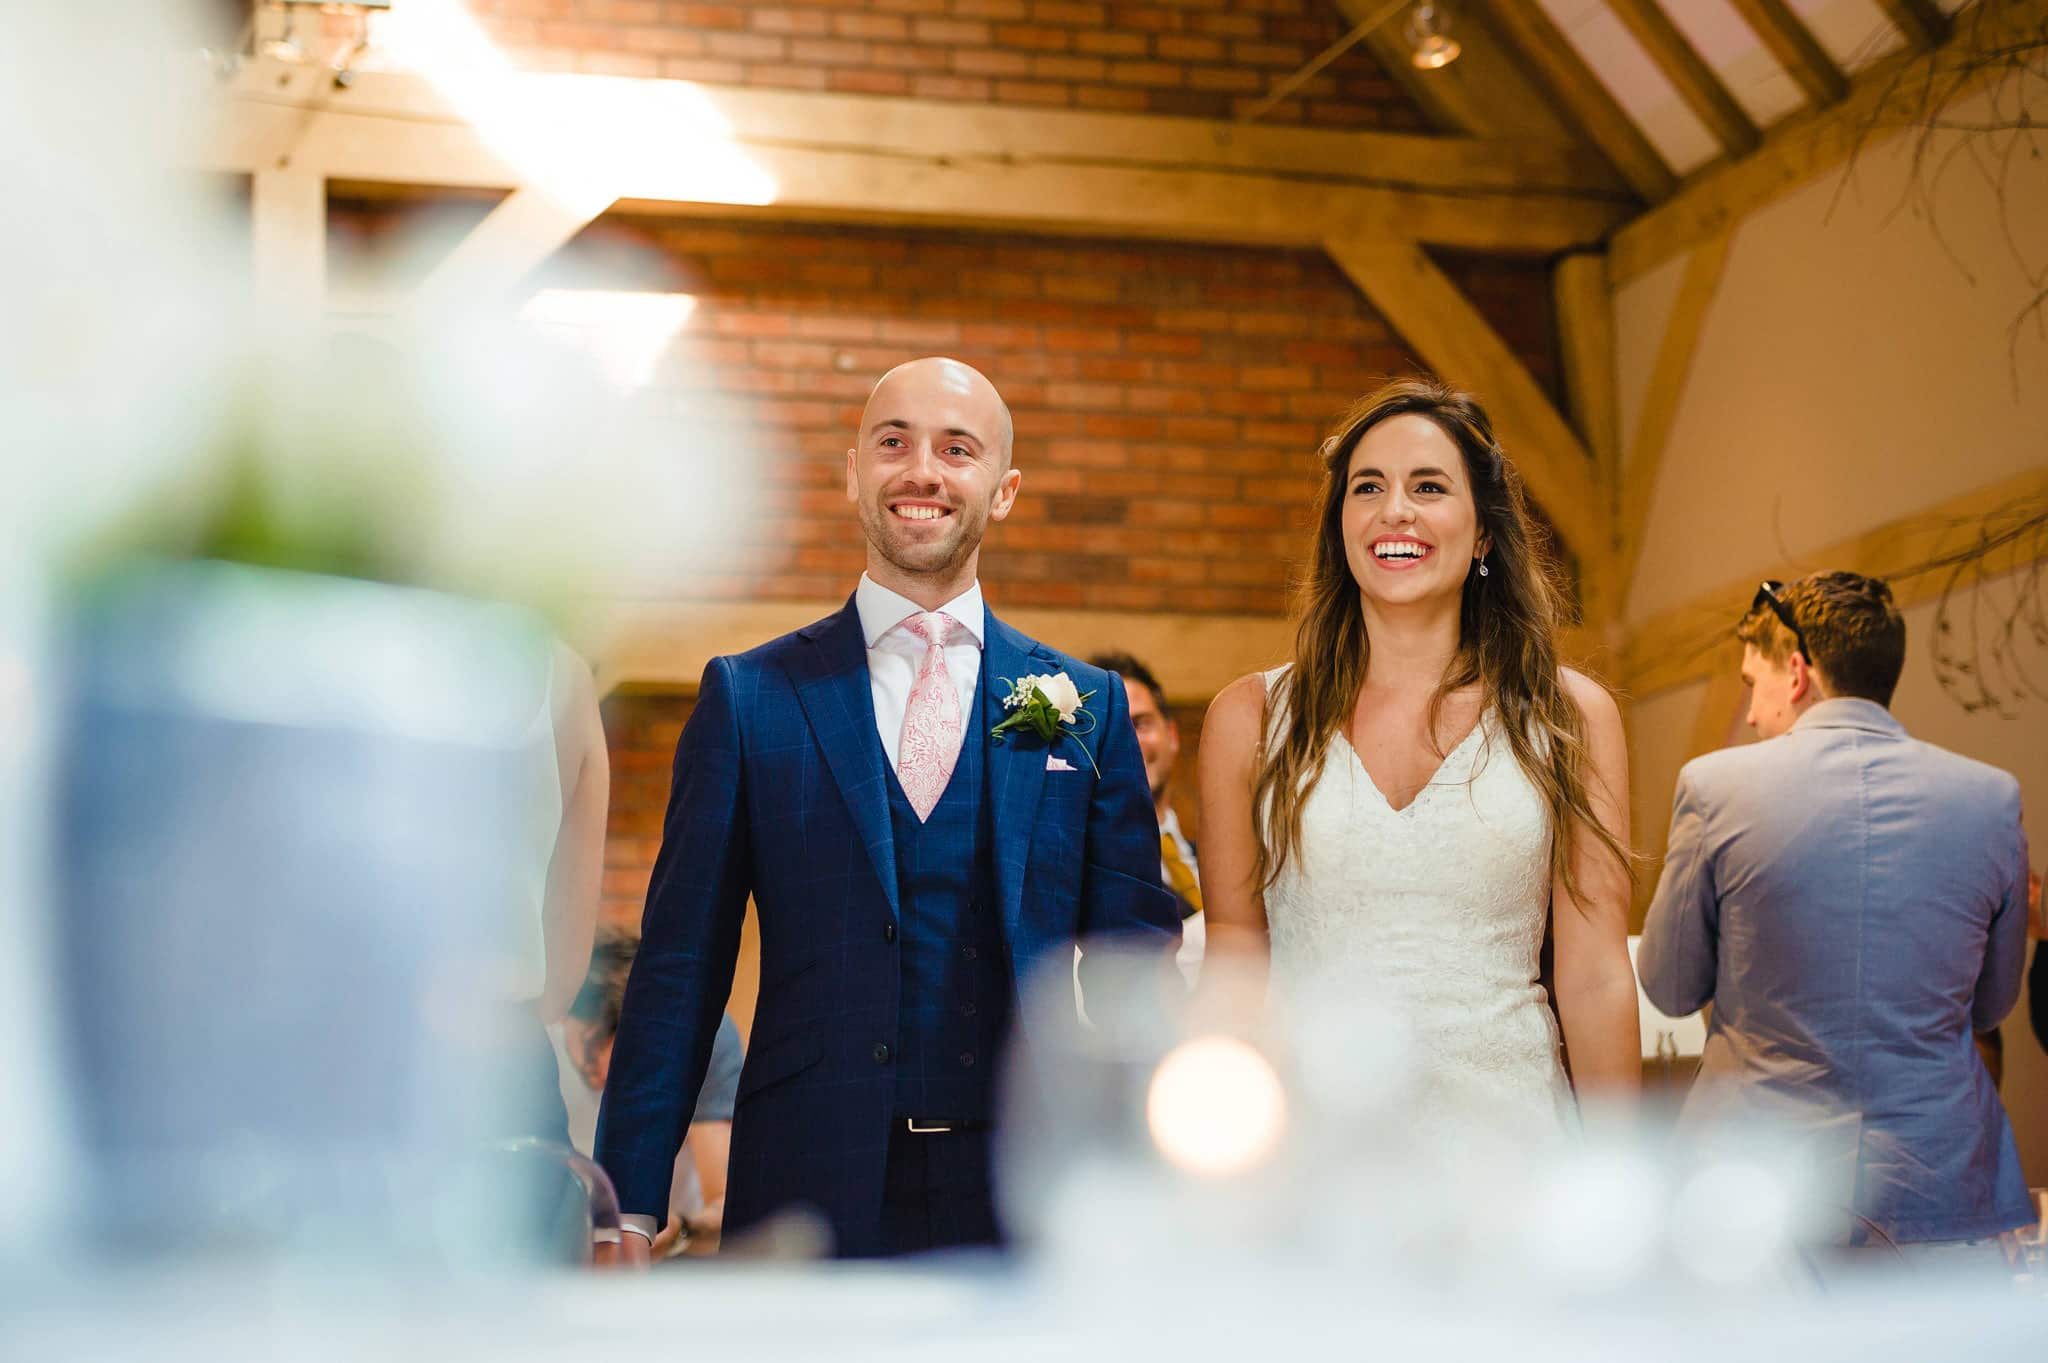 Wedding at Redhouse Barn in Stoke Prior, Worcestershire 129